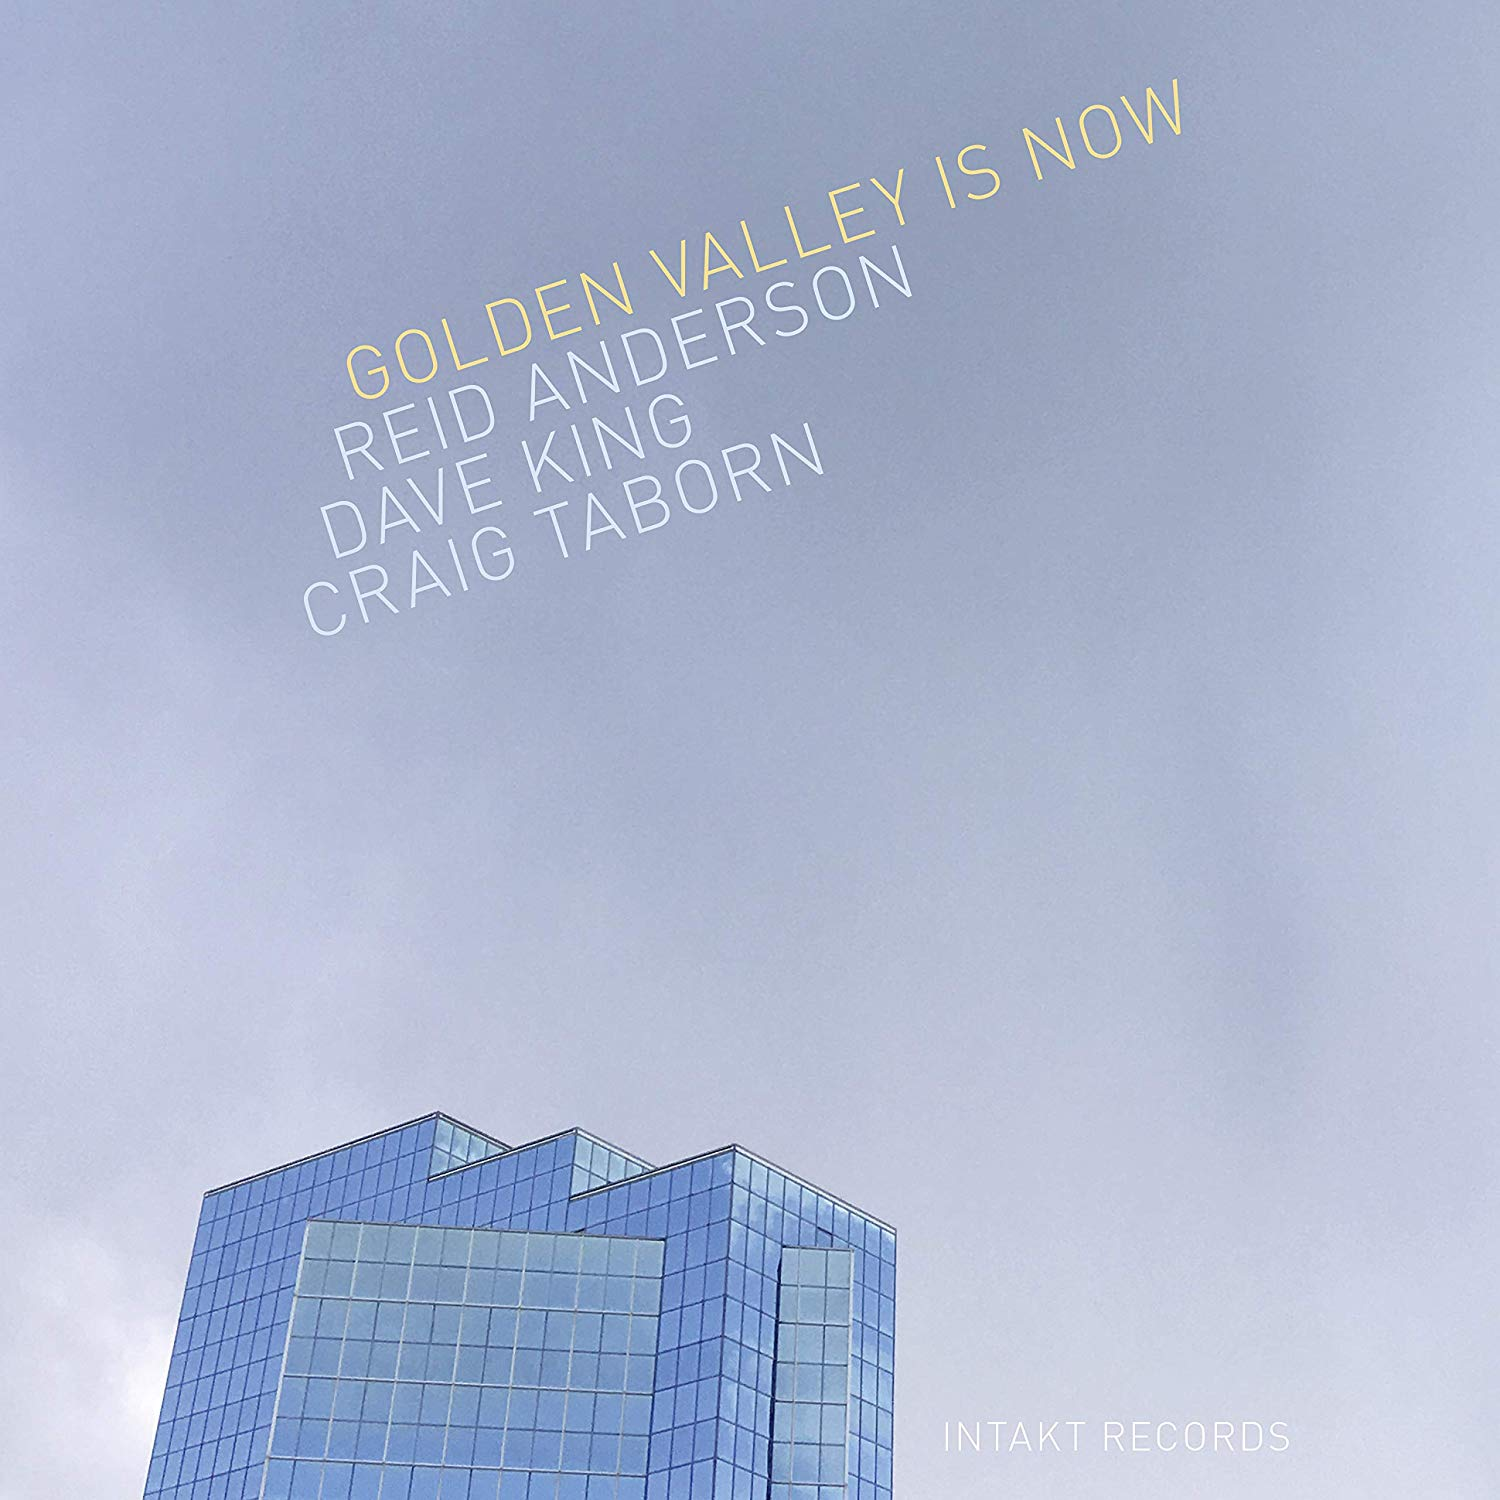 REID ANDERSON - Golden Valley Is Now cover